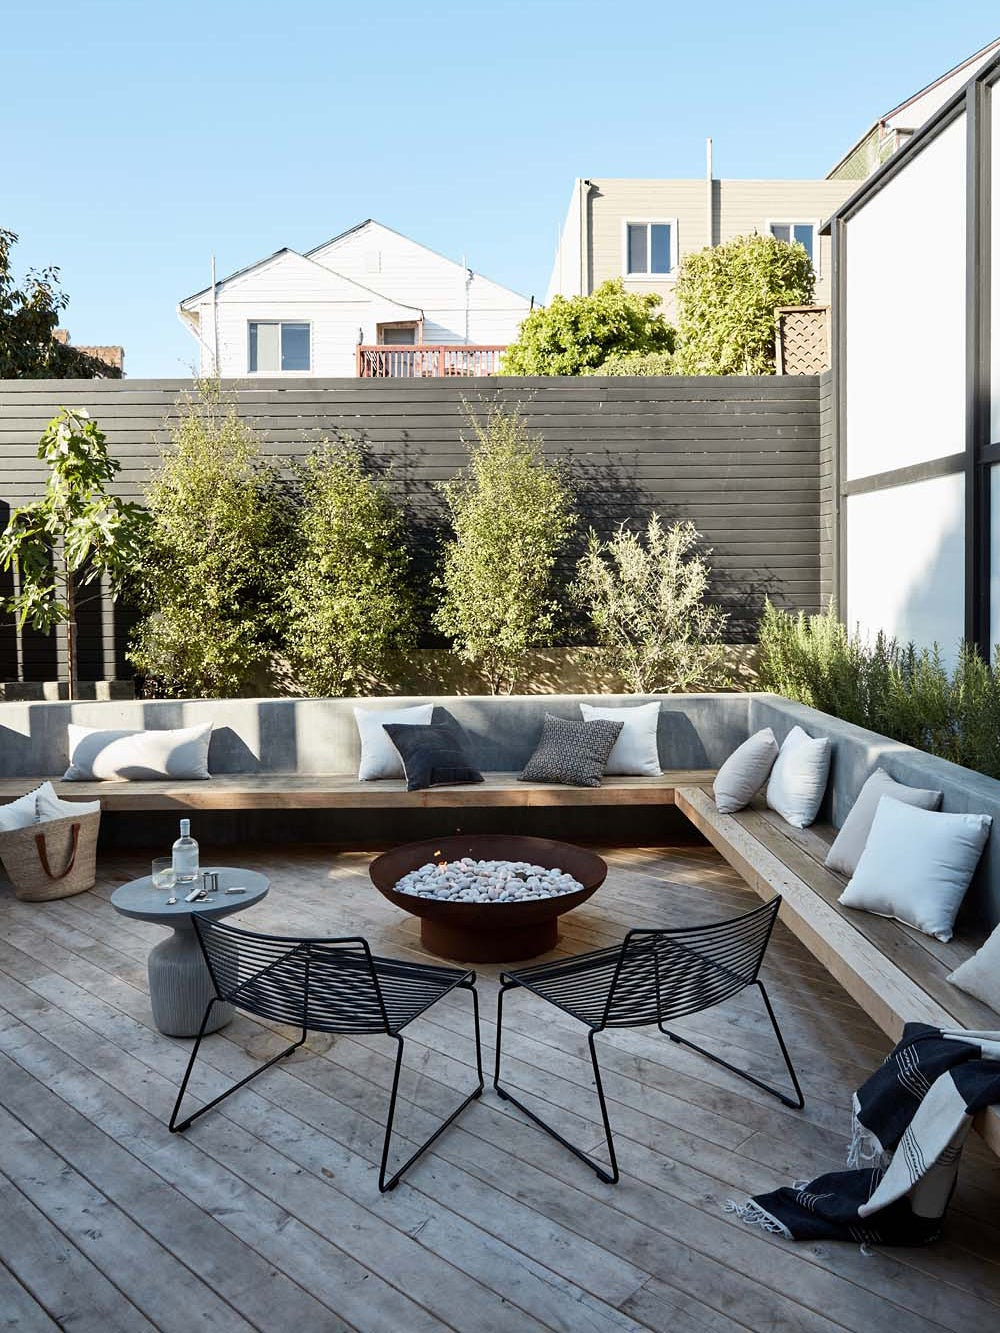 Erin Hiemstra's outdoor living area with firepit